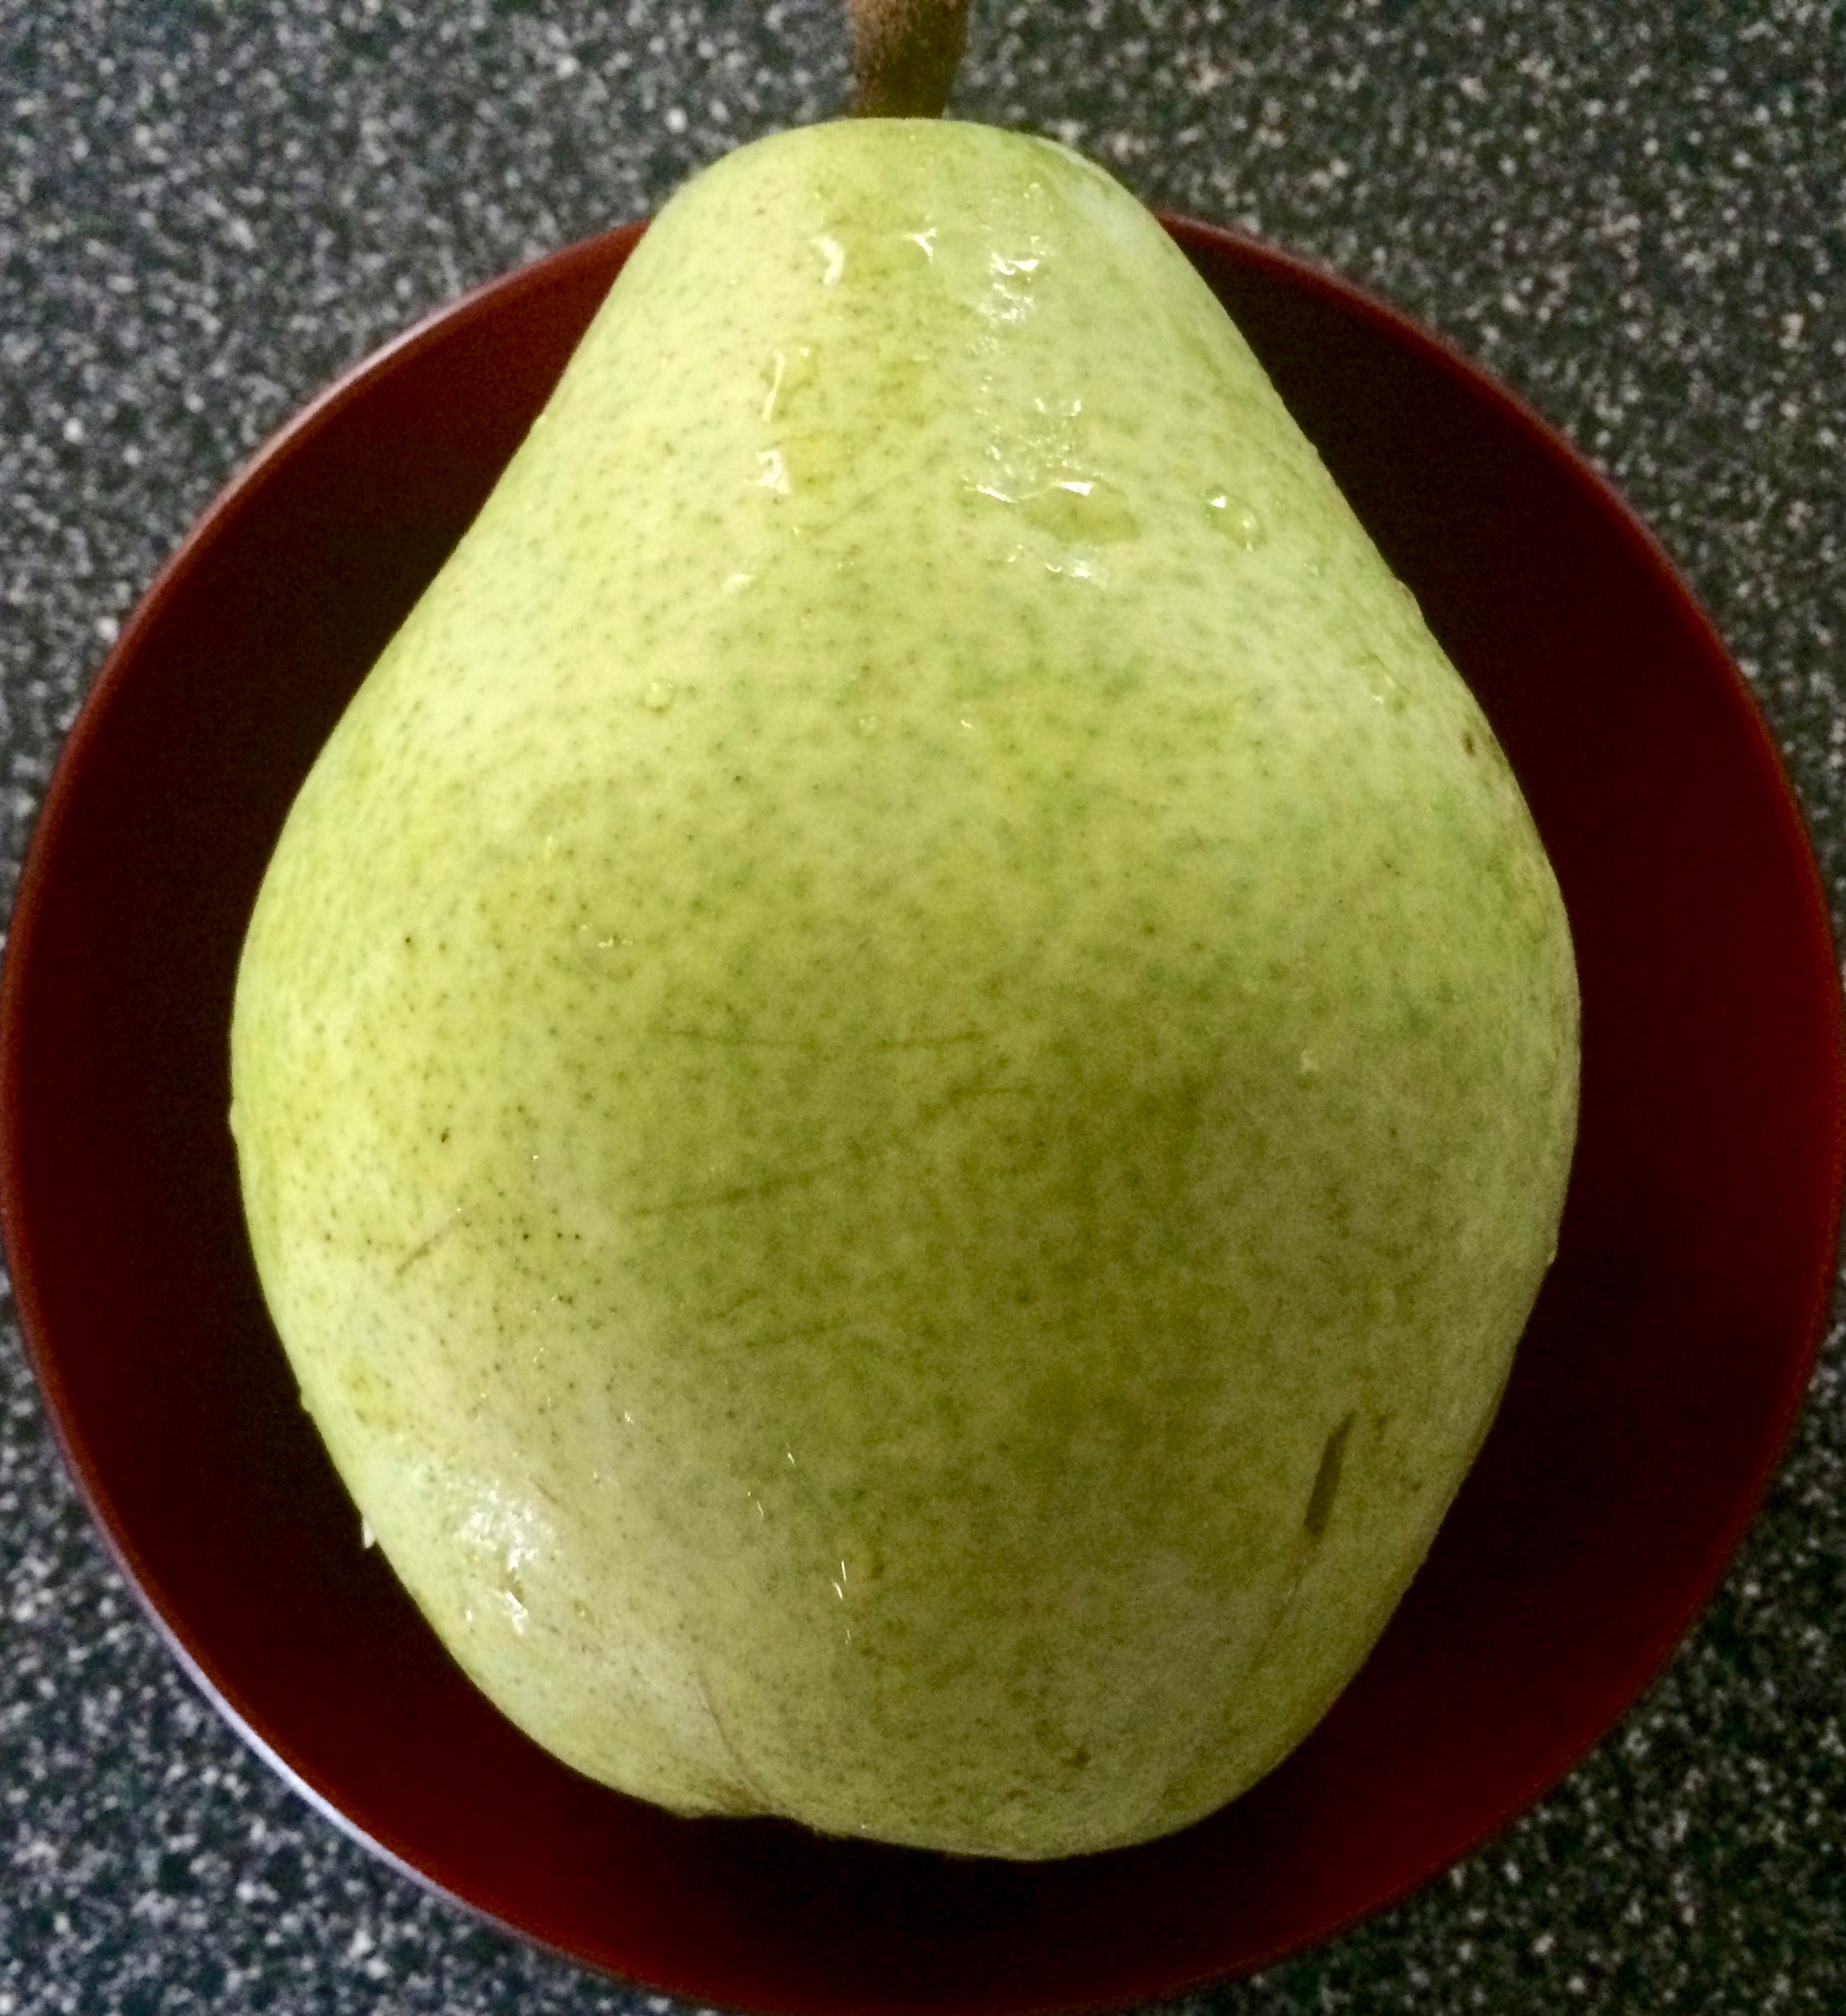 Pear Season has arrived!